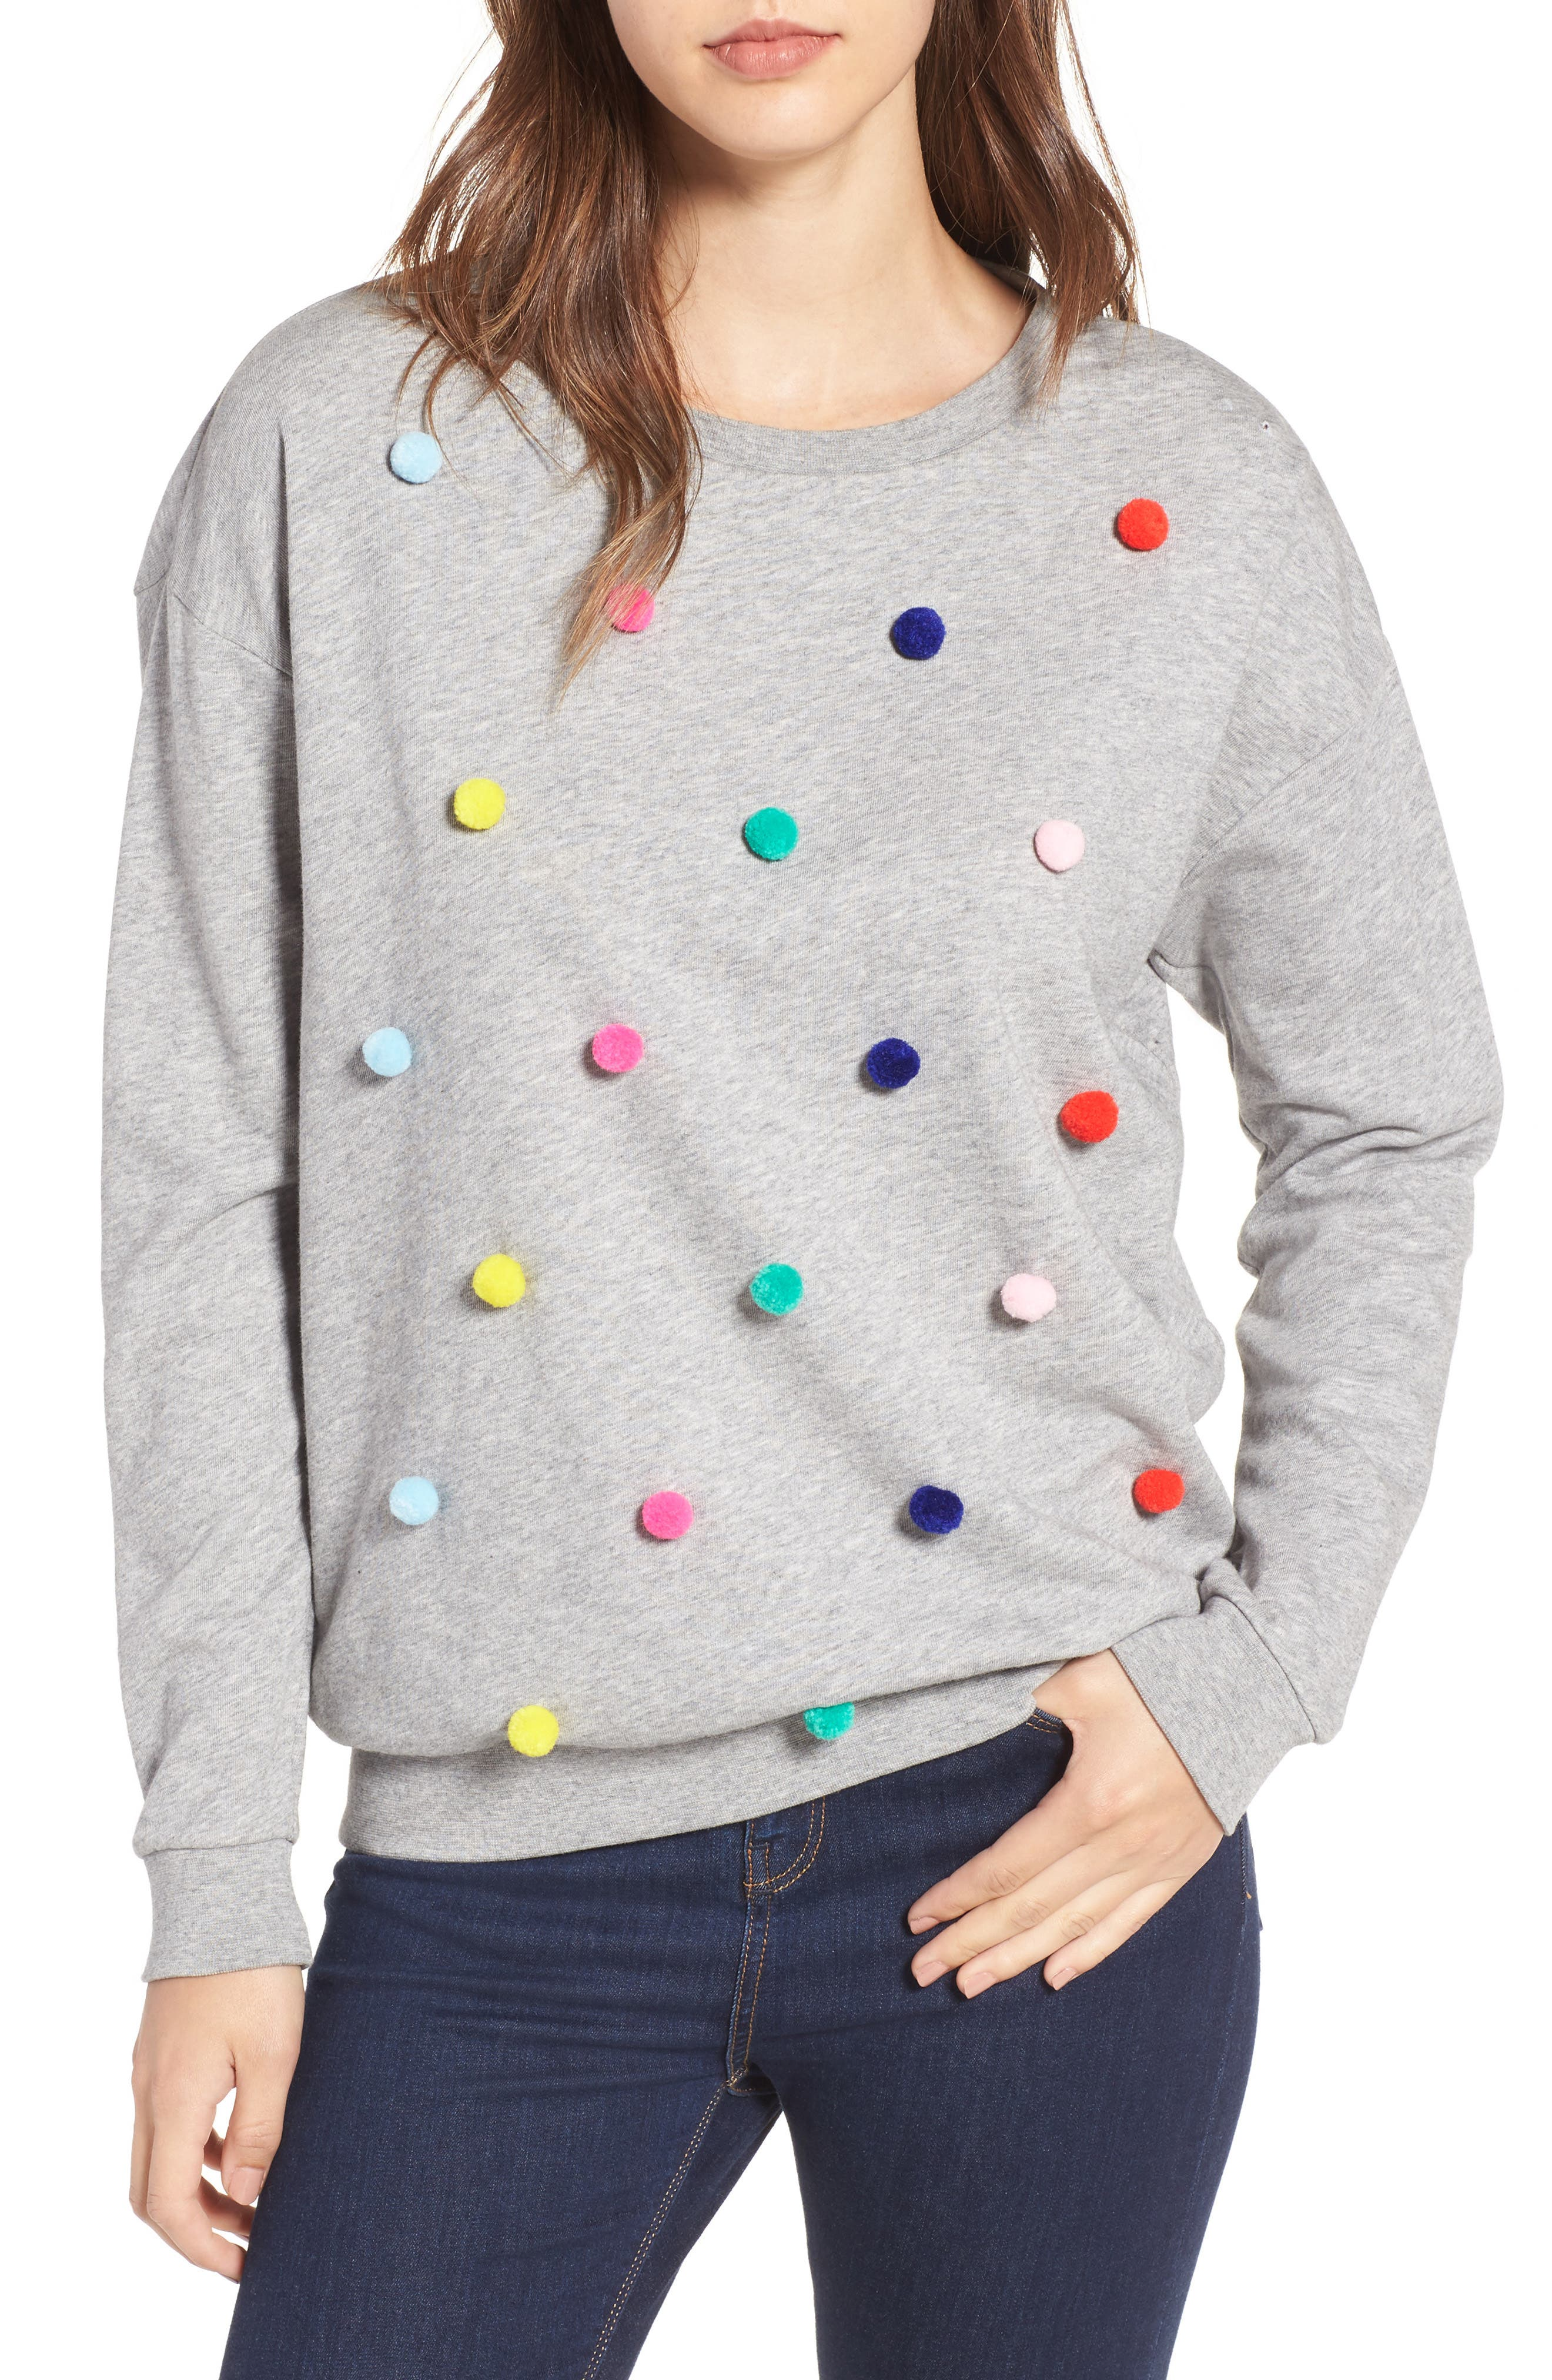 Pompom Sweatshirt,                             Main thumbnail 1, color,                             020